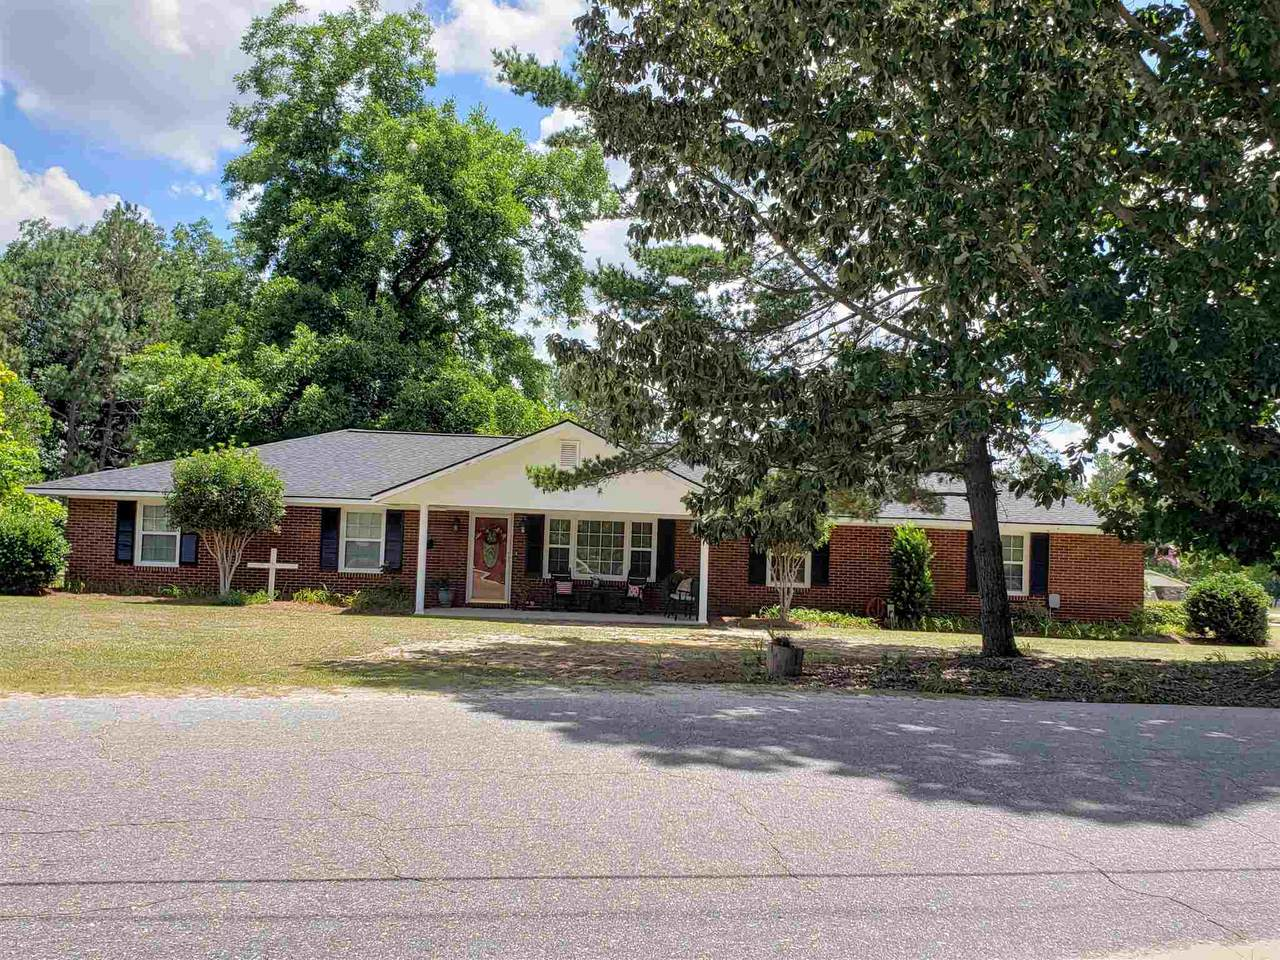 103 Old Metter Rd - Photo 1